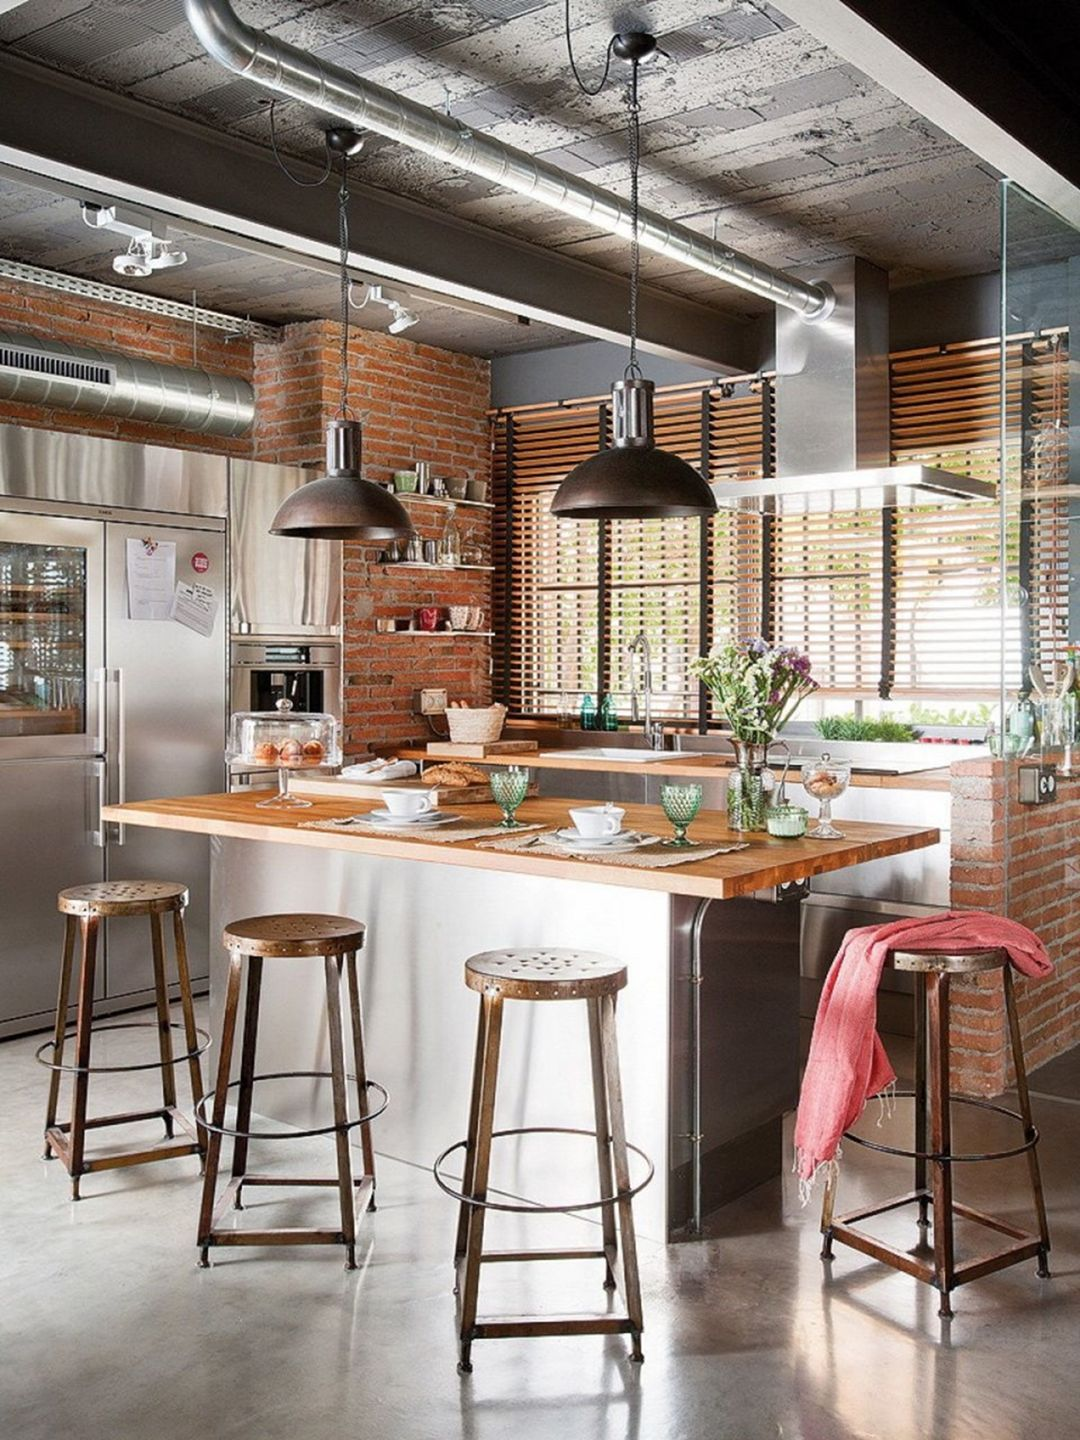 15 Awesome Industrial Kitchen Design Ideas To Captivate Your